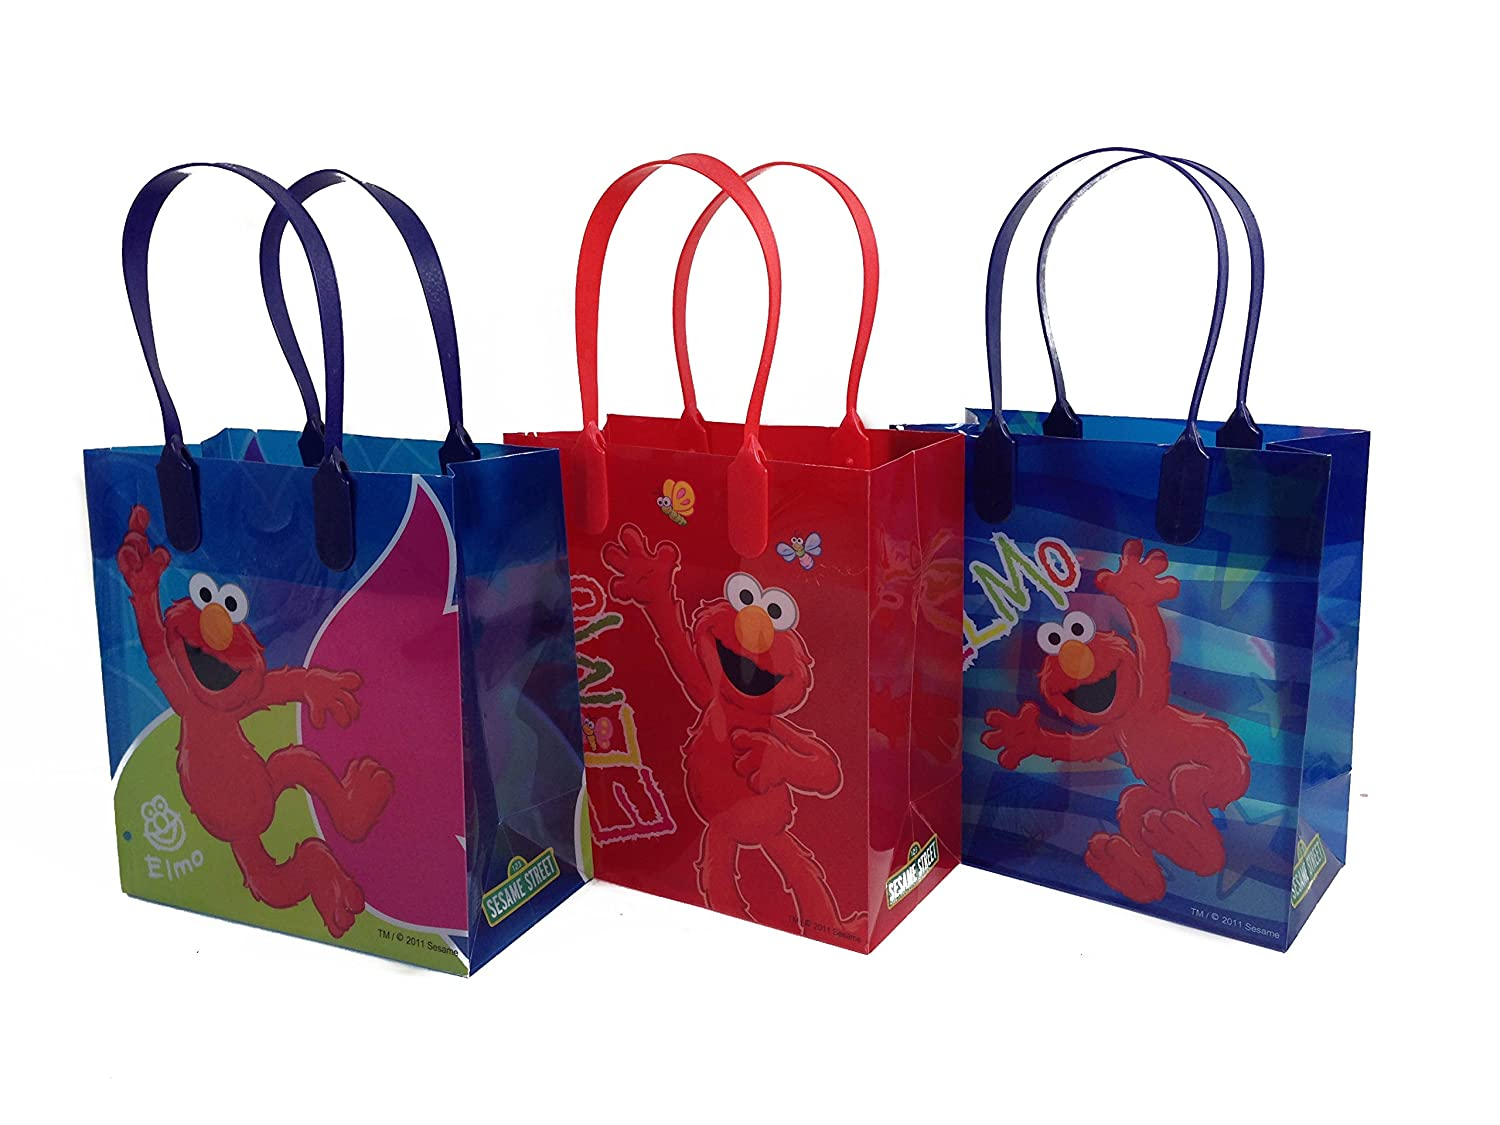 Amazon.com: Disney Goodie bolsas Party Favor bolsas de ...